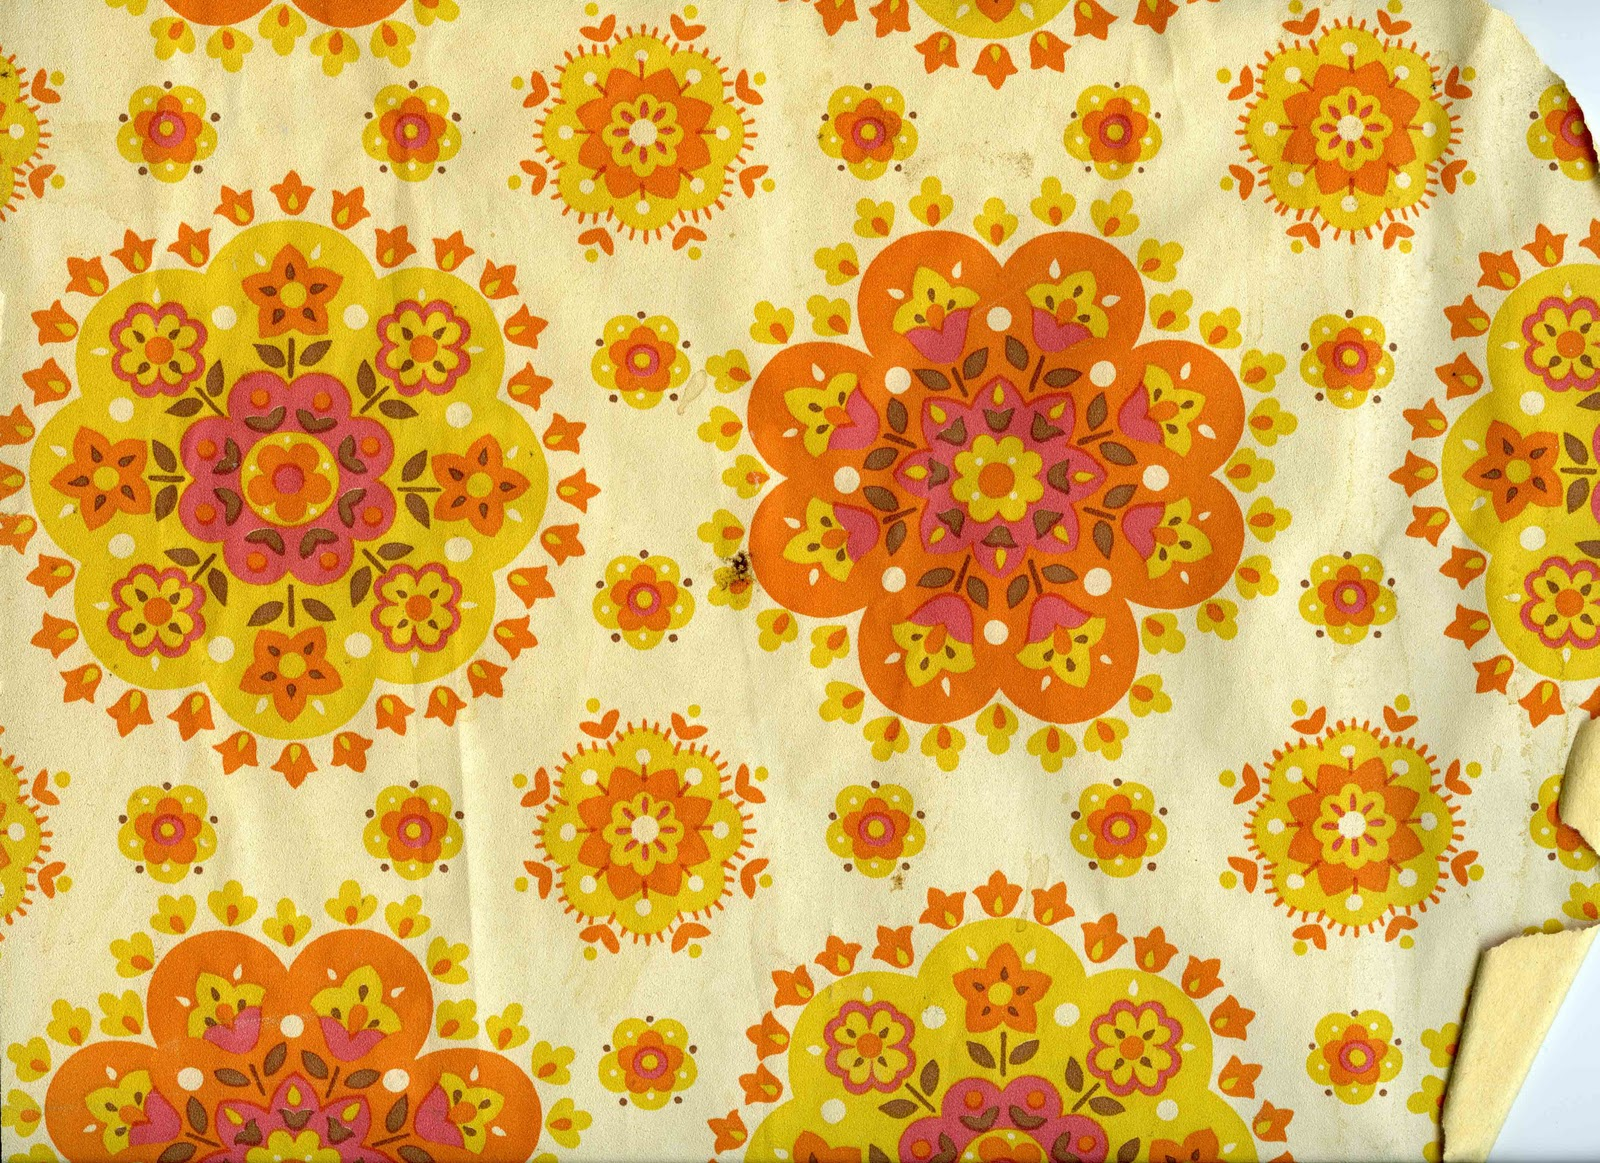 http://2.bp.blogspot.com/_UGQvmX-fk2A/TNQ8OVGoqbI/AAAAAAAABAI/0SIutHHiDhs/s1600/wallpaper-60s-70s-yellow-orange-floral-circular-pattern-design-on-wall-of-house-built-in-about-1970-fading-and-tattered-rotated-5-DHD.jpg